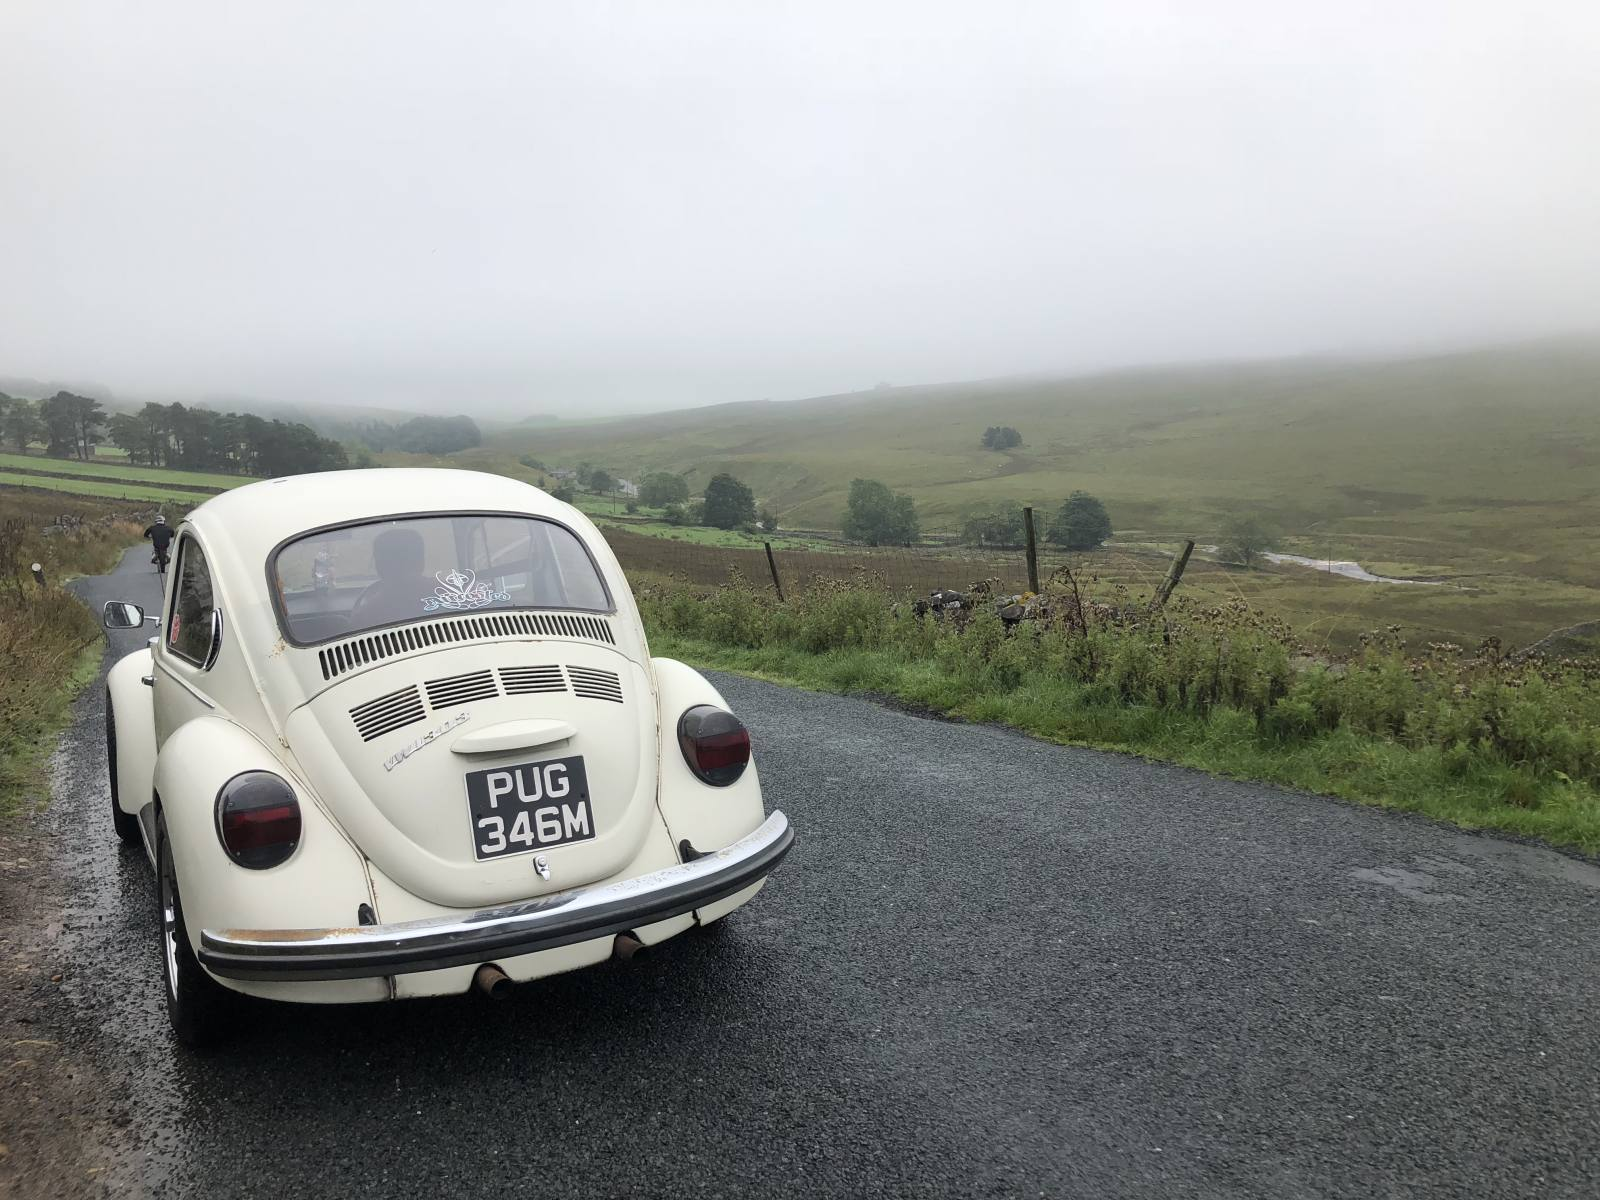 1973 vw beetle in the yorkshire dales